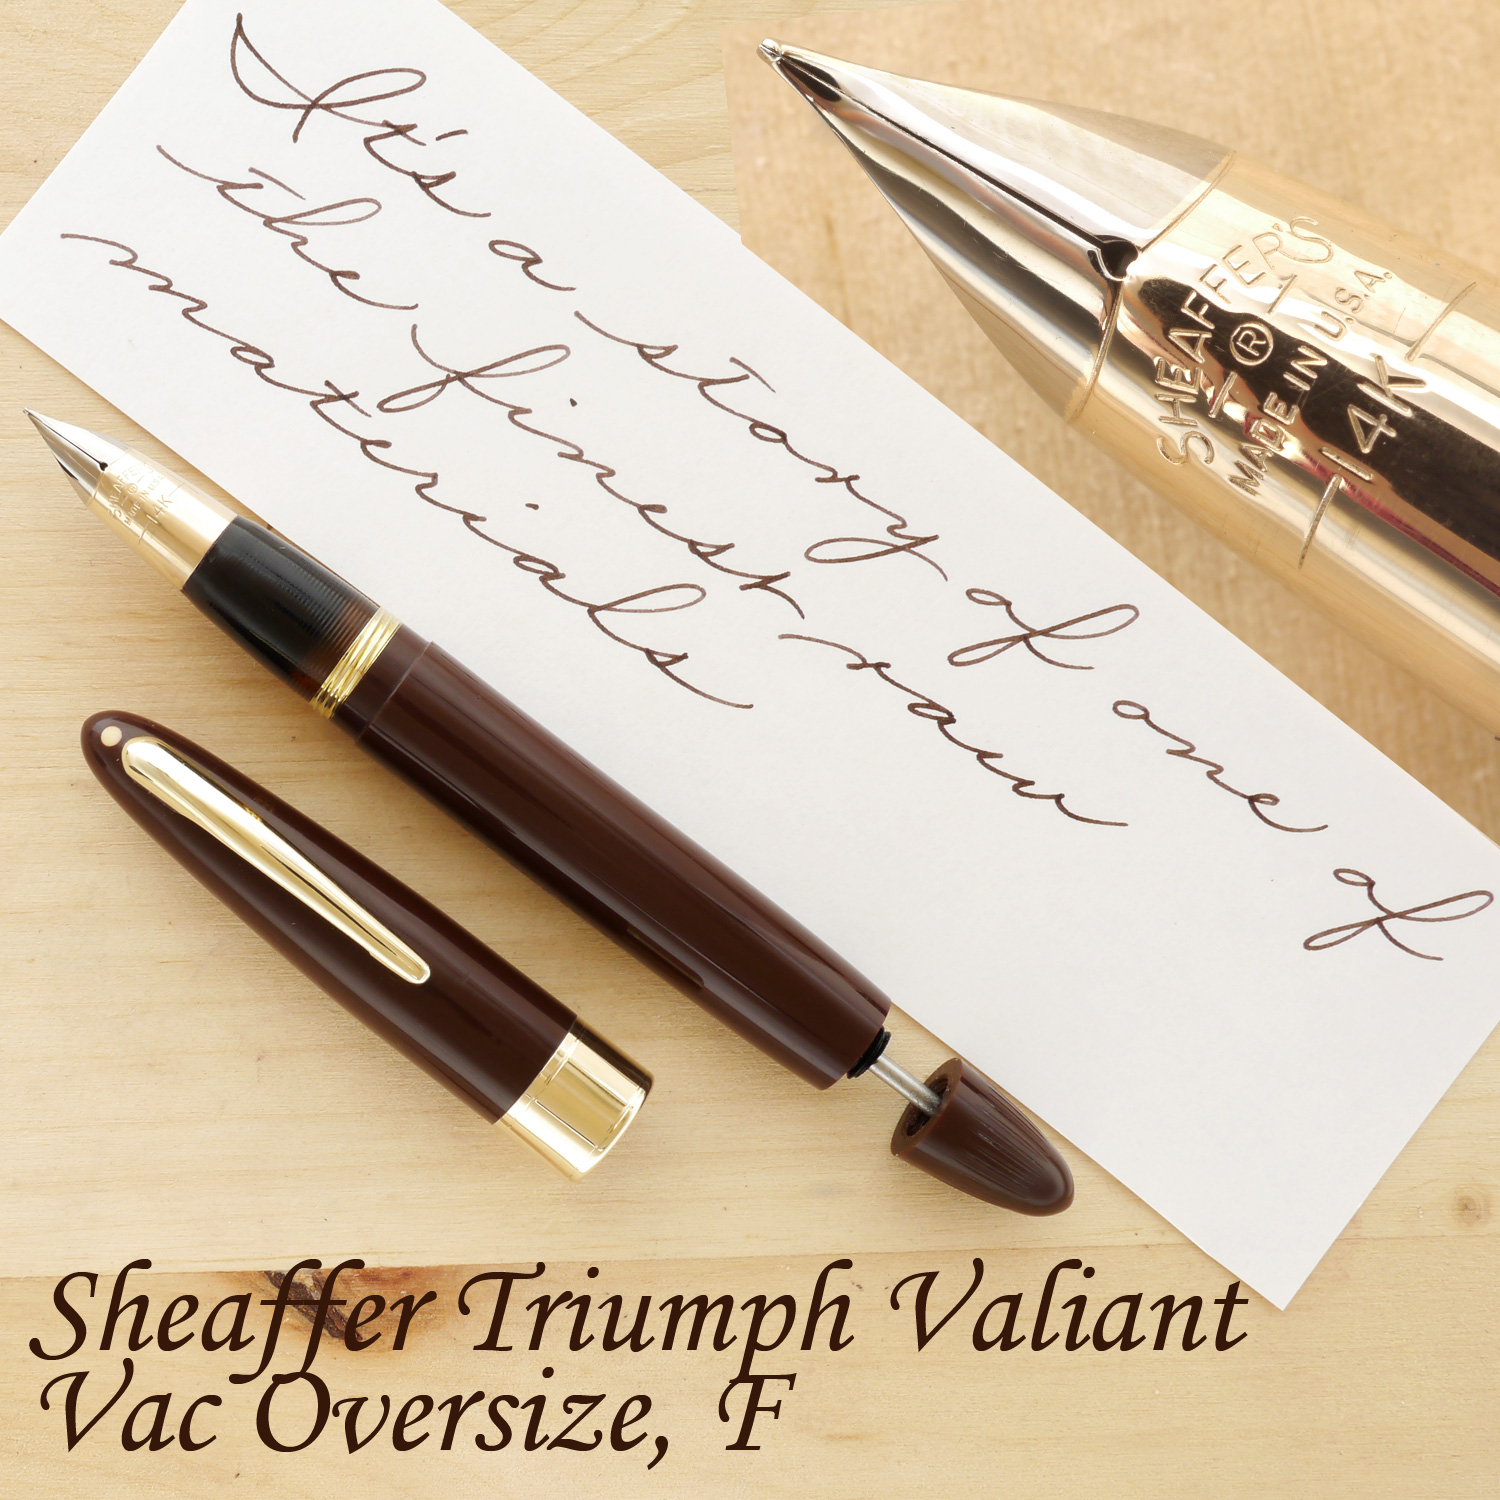 Sheaffer Triumph Valiant Oversize, Chocolate Brown, XF, uncapped, with the plunger partially extended